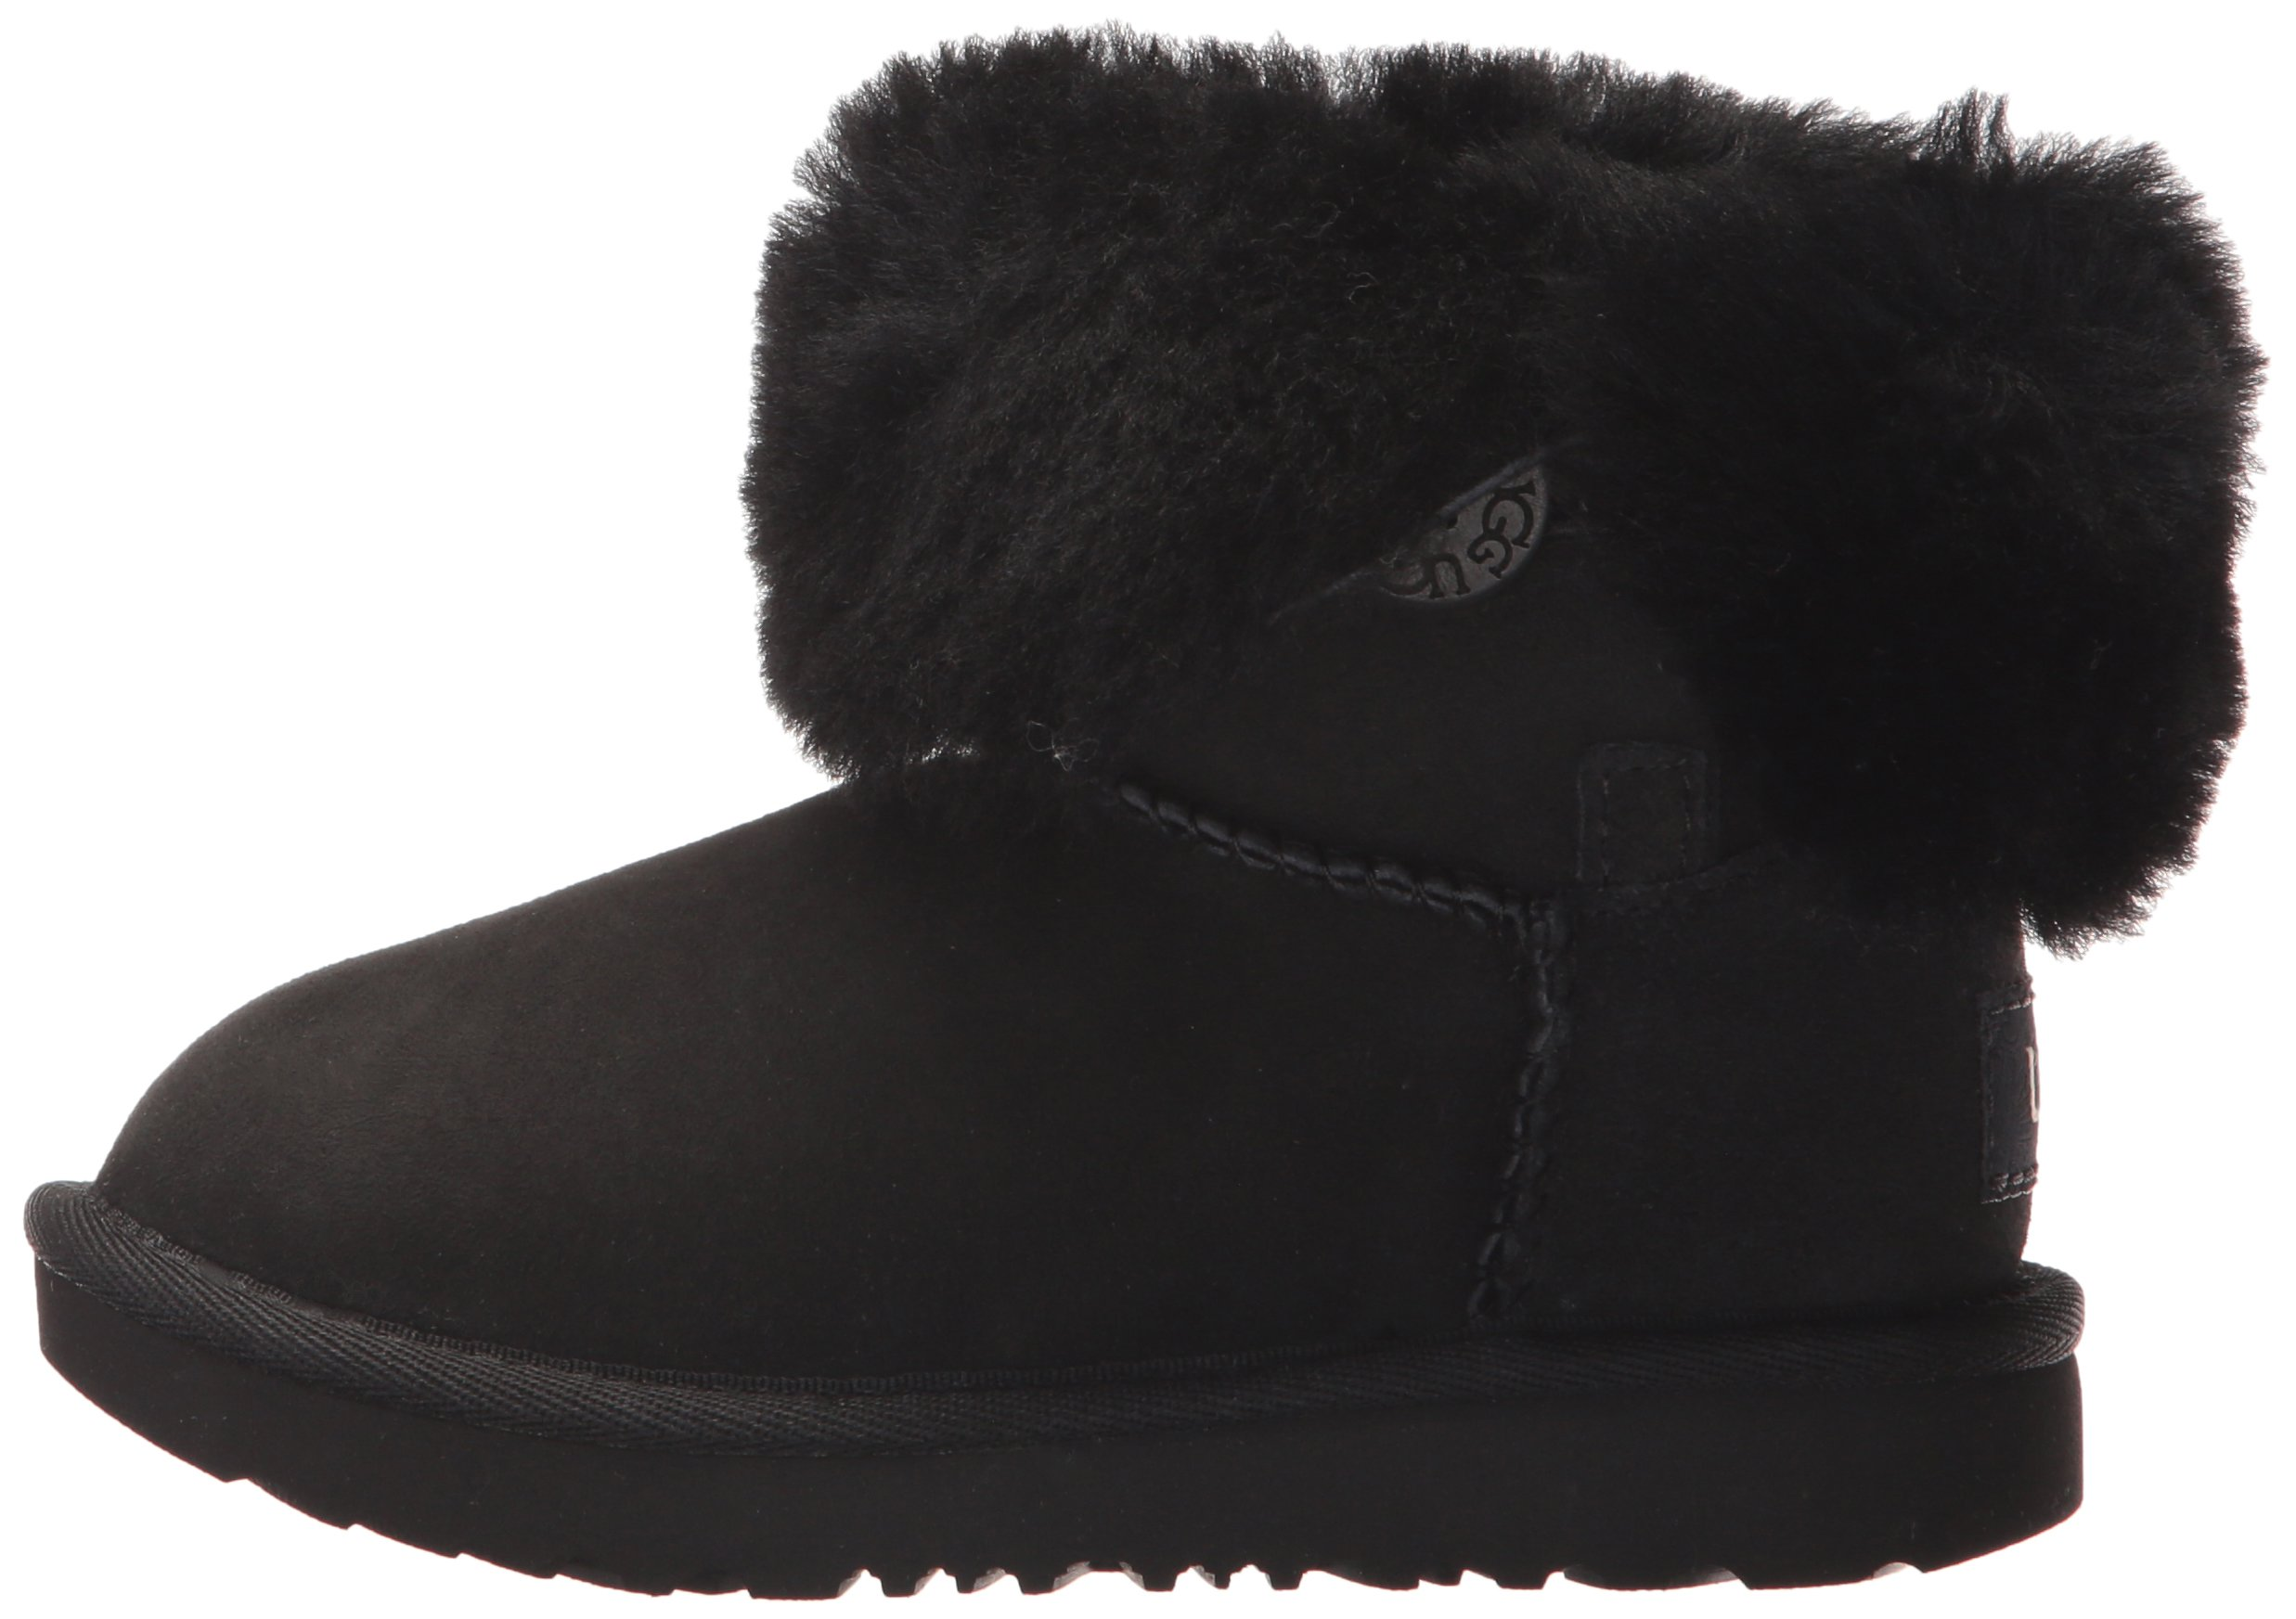 UGG Girls T Bailey Button II Fashion Boot, Black, 12 M US Little Kid by UGG (Image #1)